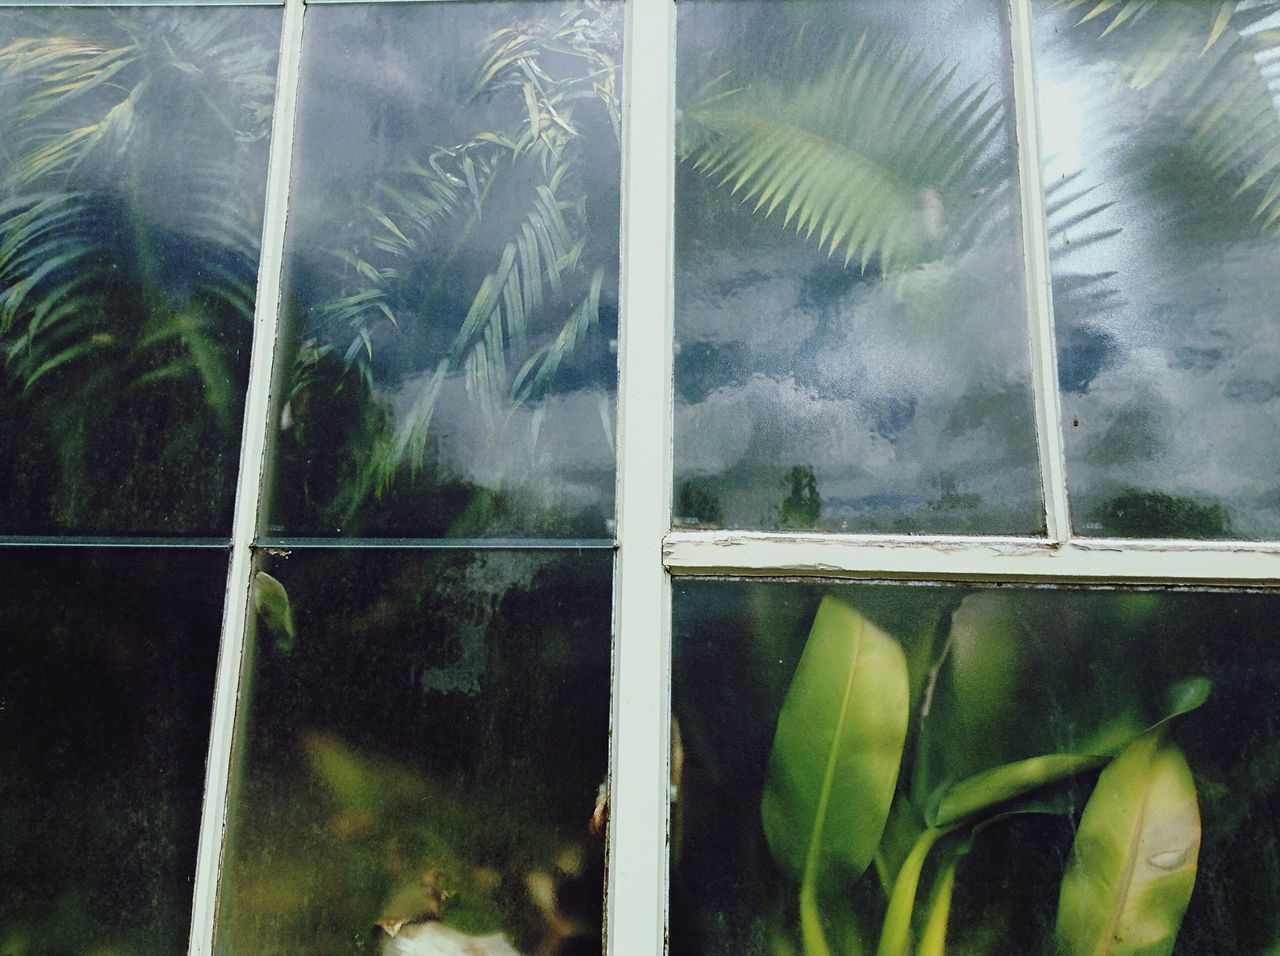 Low angle view of trees and plants growing in greenhouse